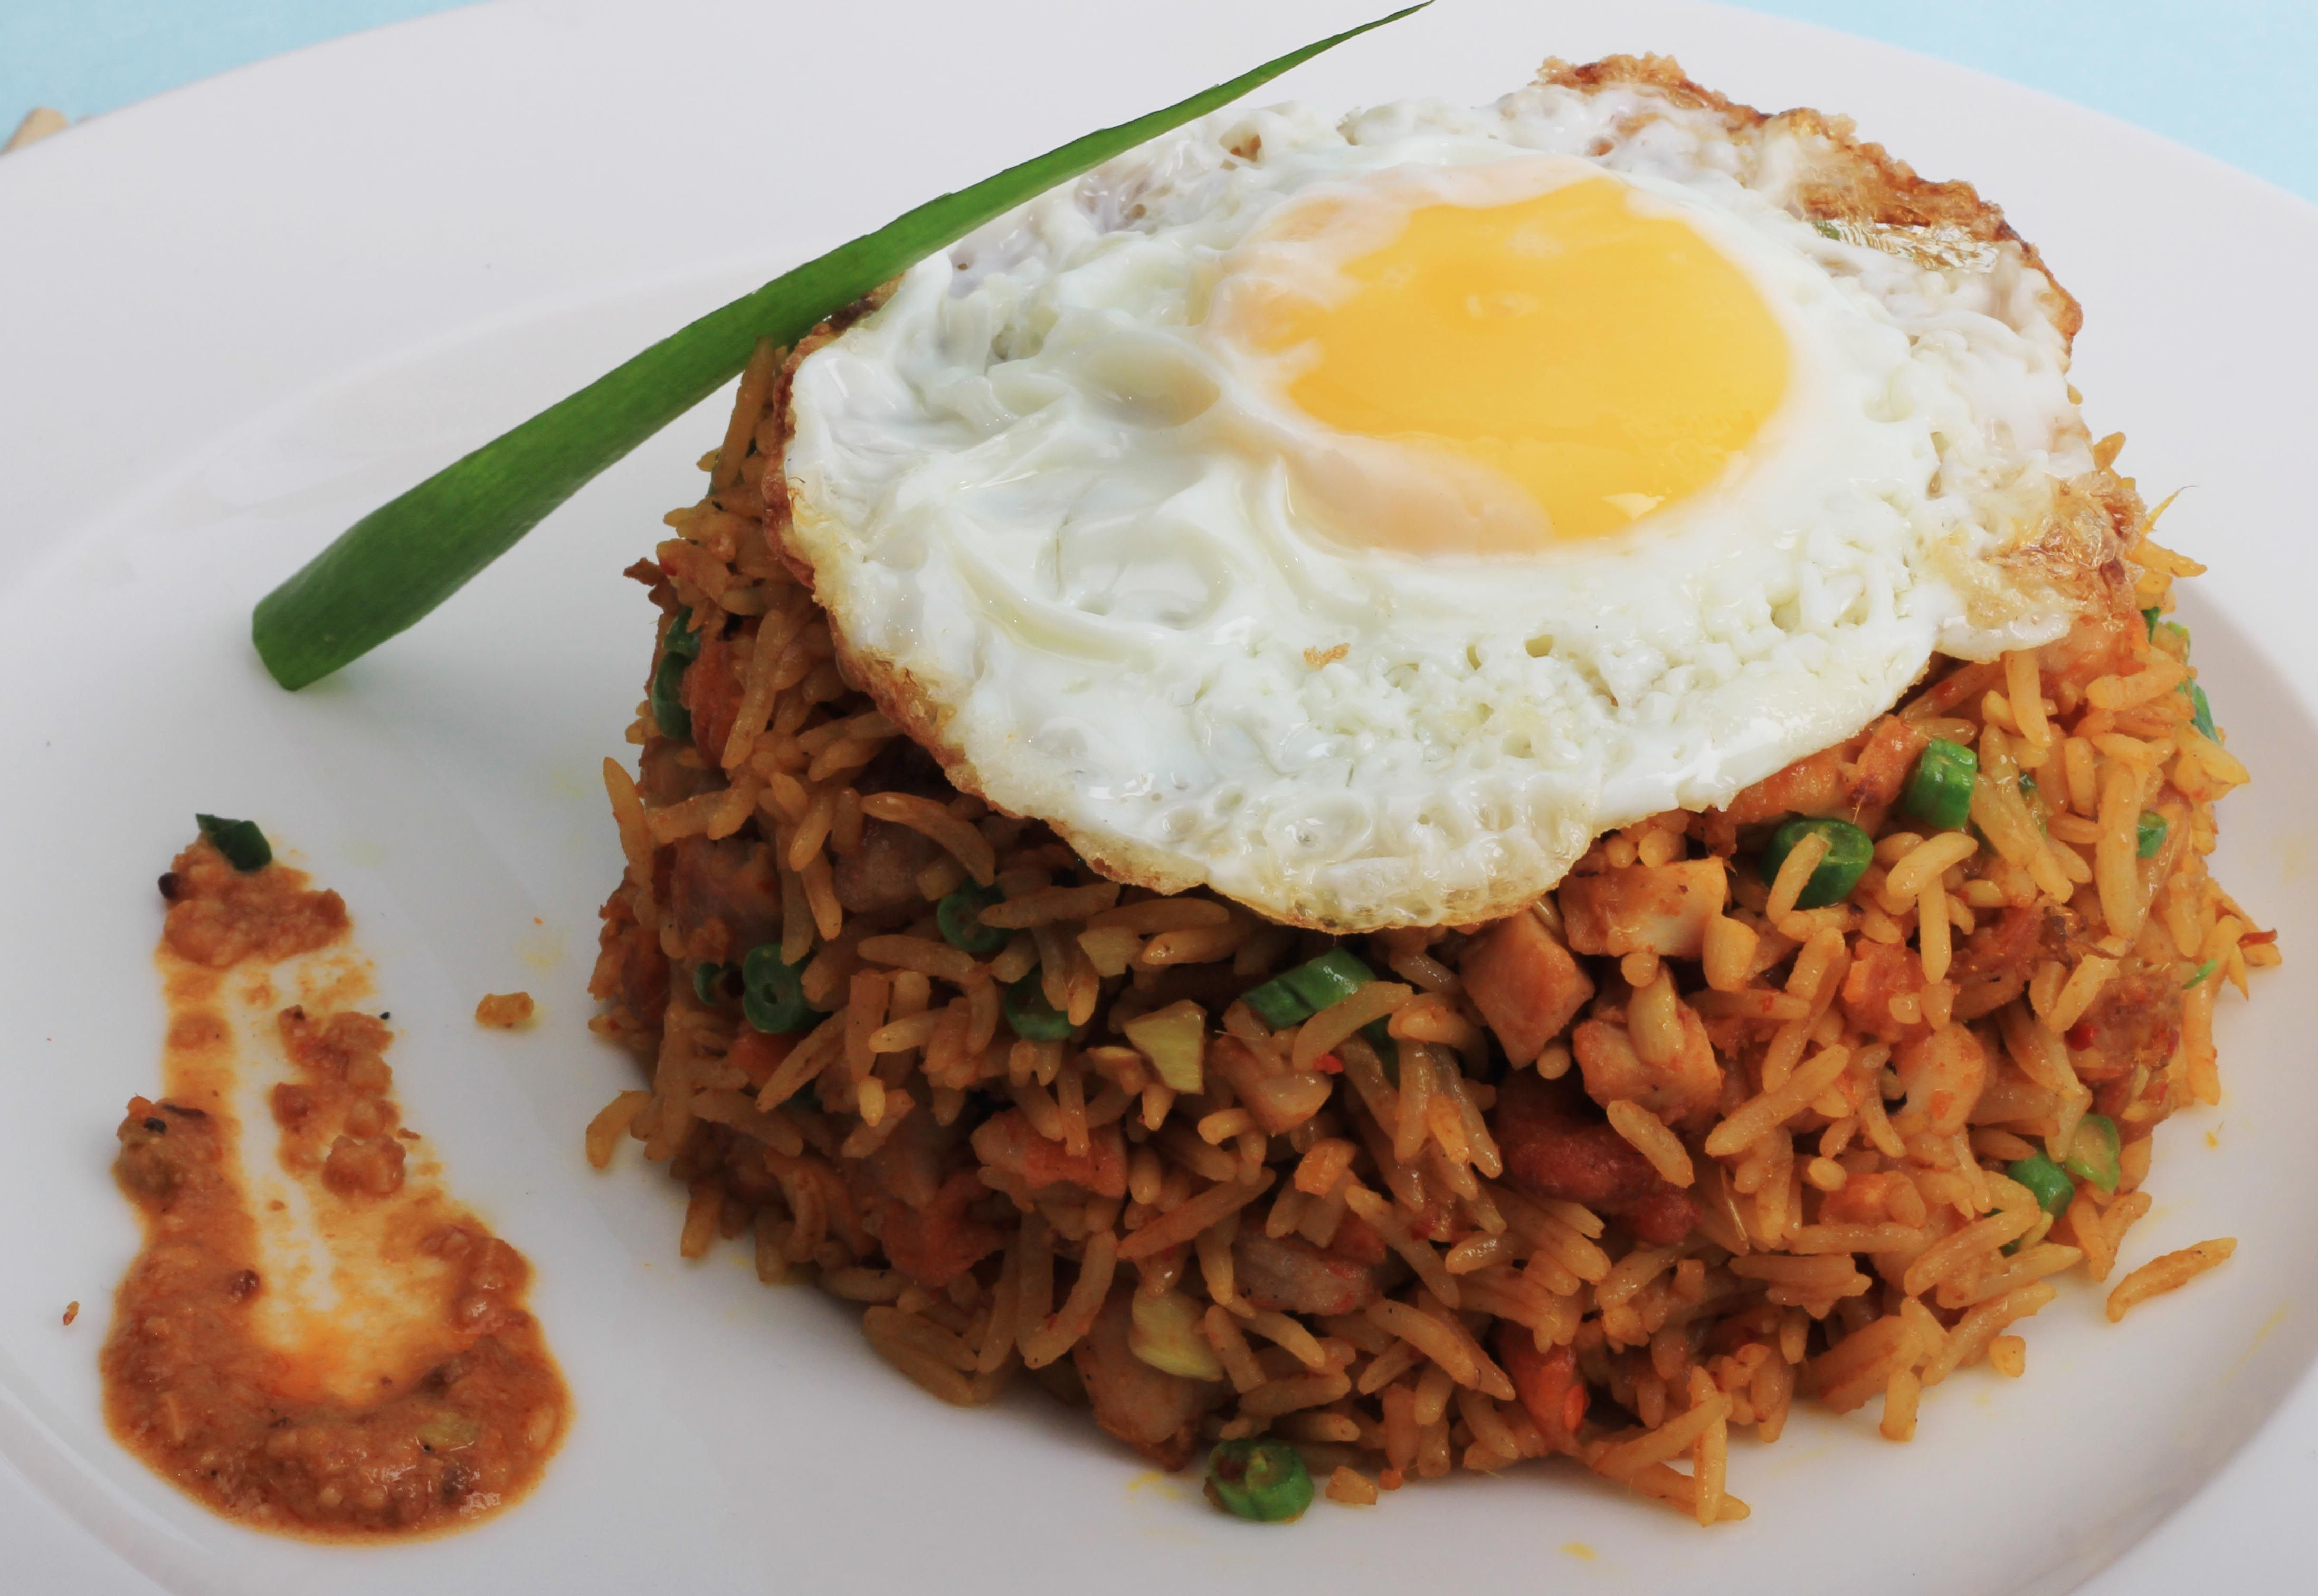 #Nasi #Goreng - #Indonesian style fried #rice with #chicken &shrimps, in an aromatic #chilli paste